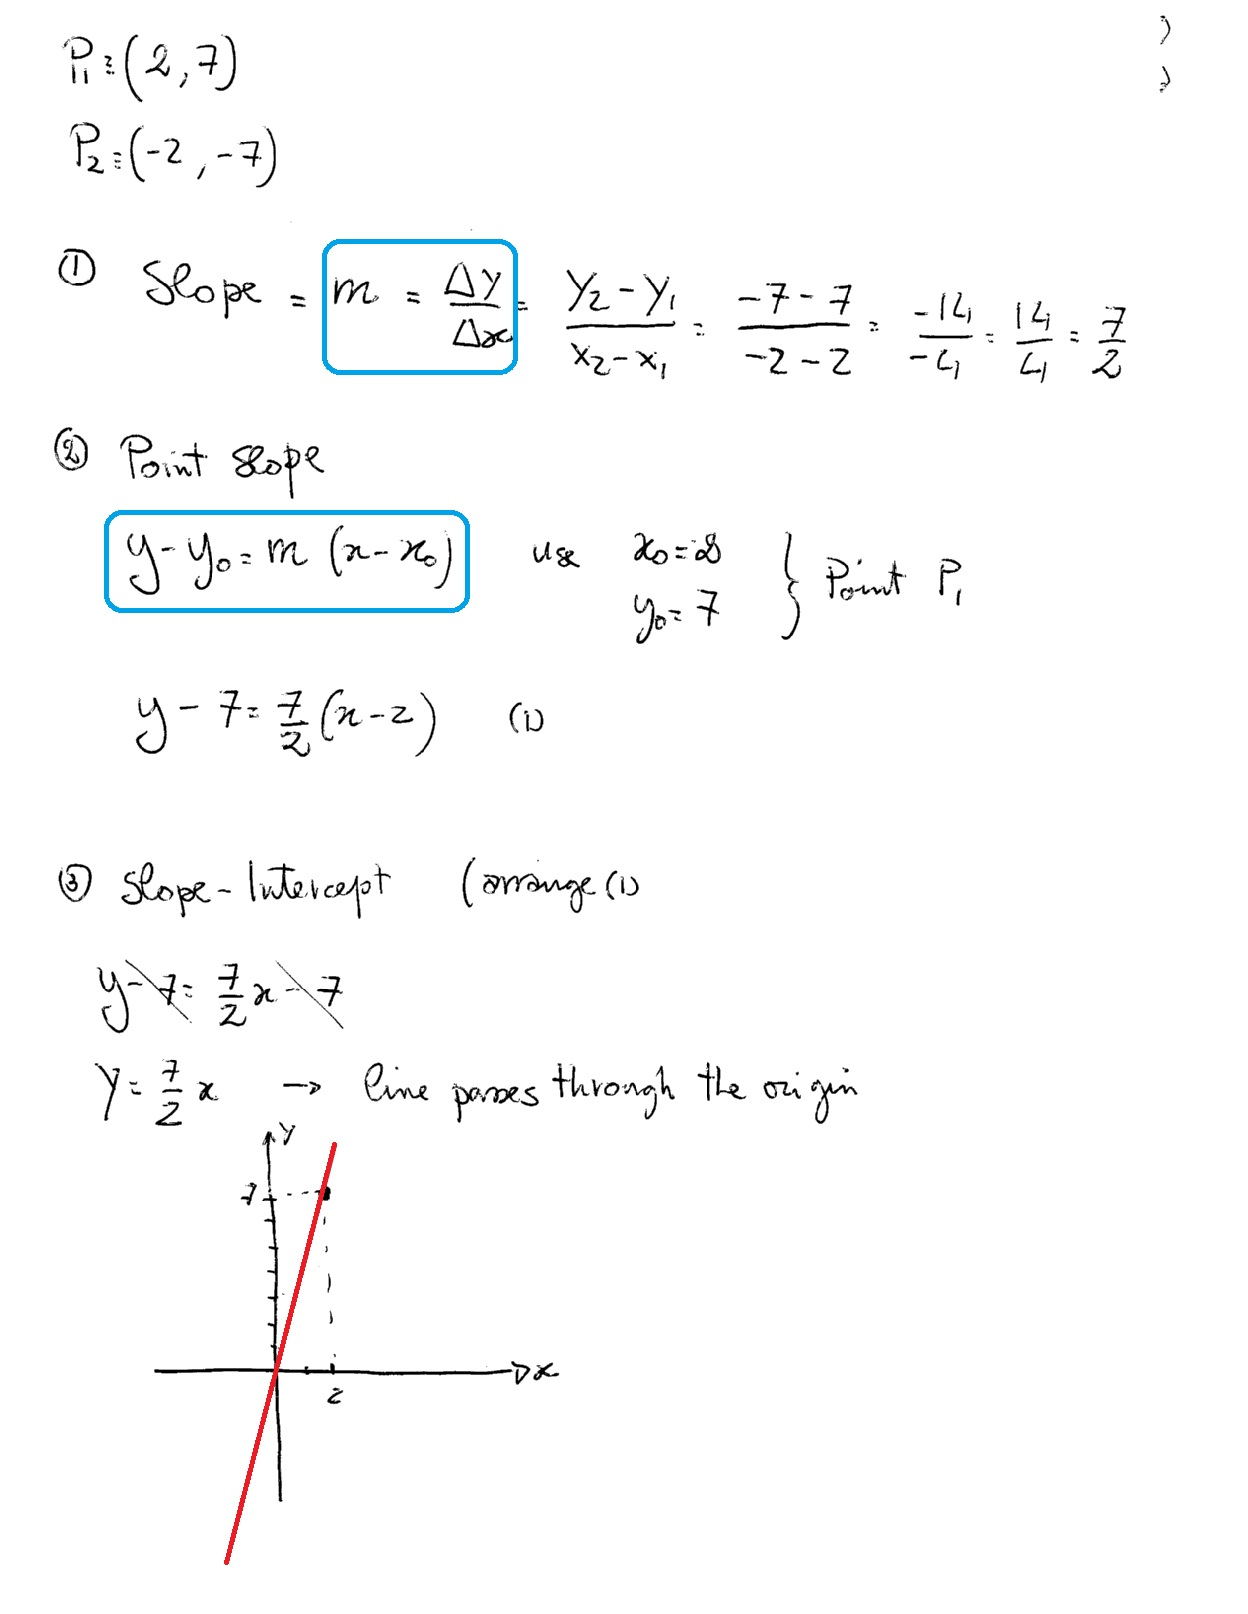 what is the equation in pointslope form and slope